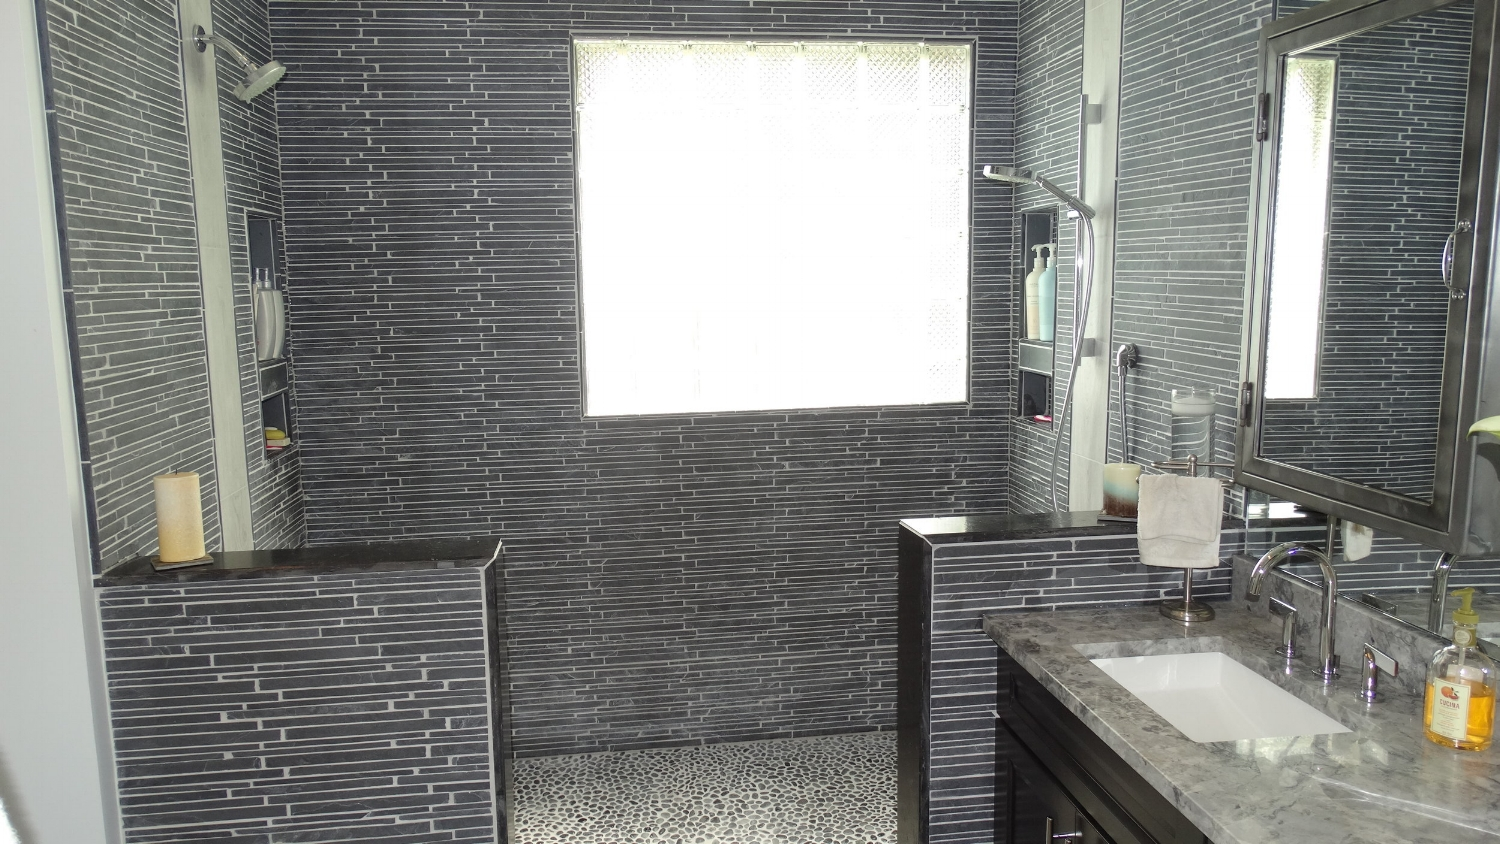 rocky-river-bathroom-remodel-slate-tile-large-custom-shower.JPG